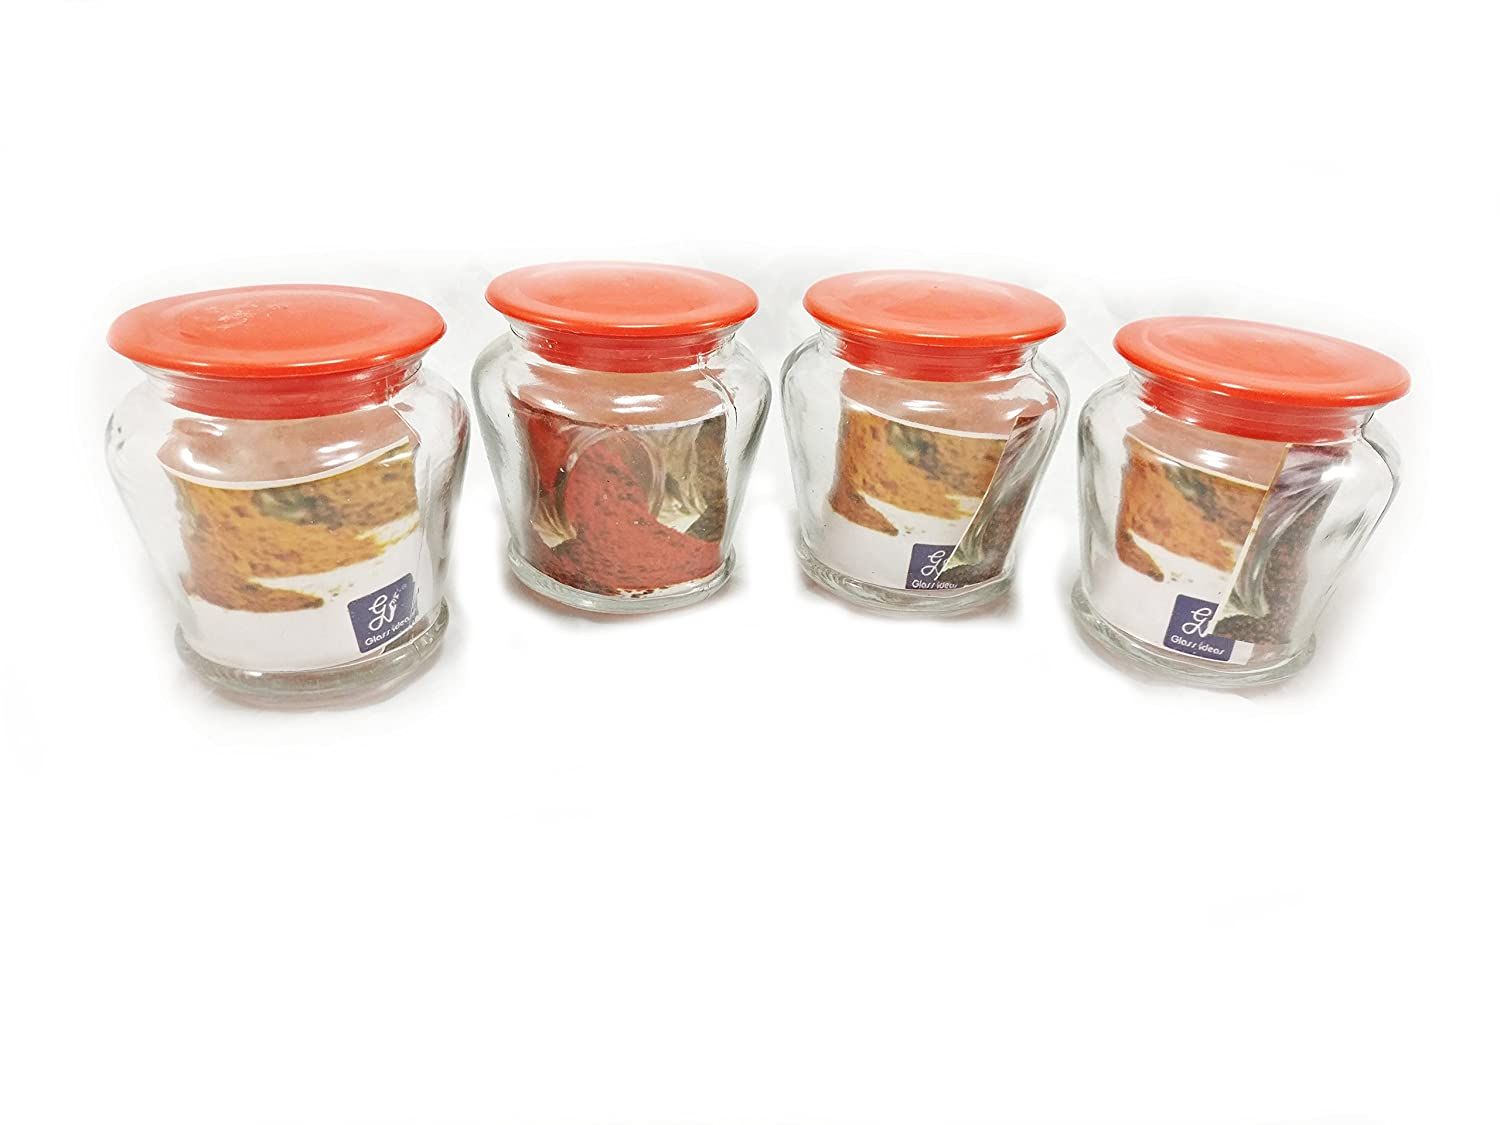 Buy Gupta Glass Spice Jar Set Of 8 Multicolour Sjp1741 Online At Low Prices In India Amazon In